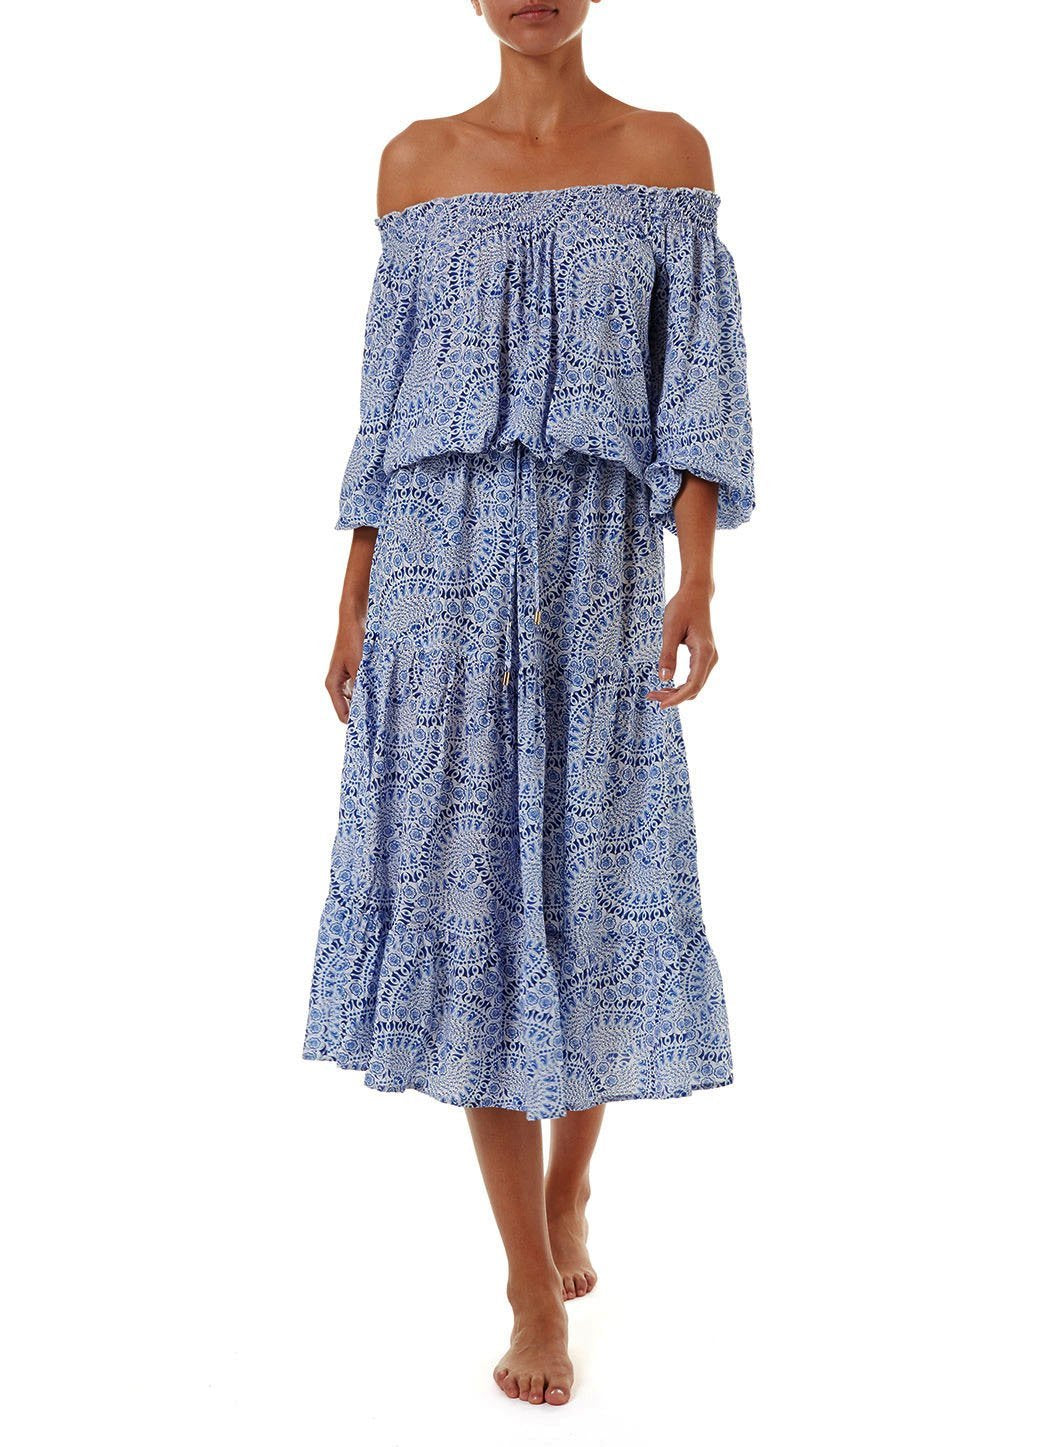 carmen blue fan offtheshoulder midi dress 2019 F